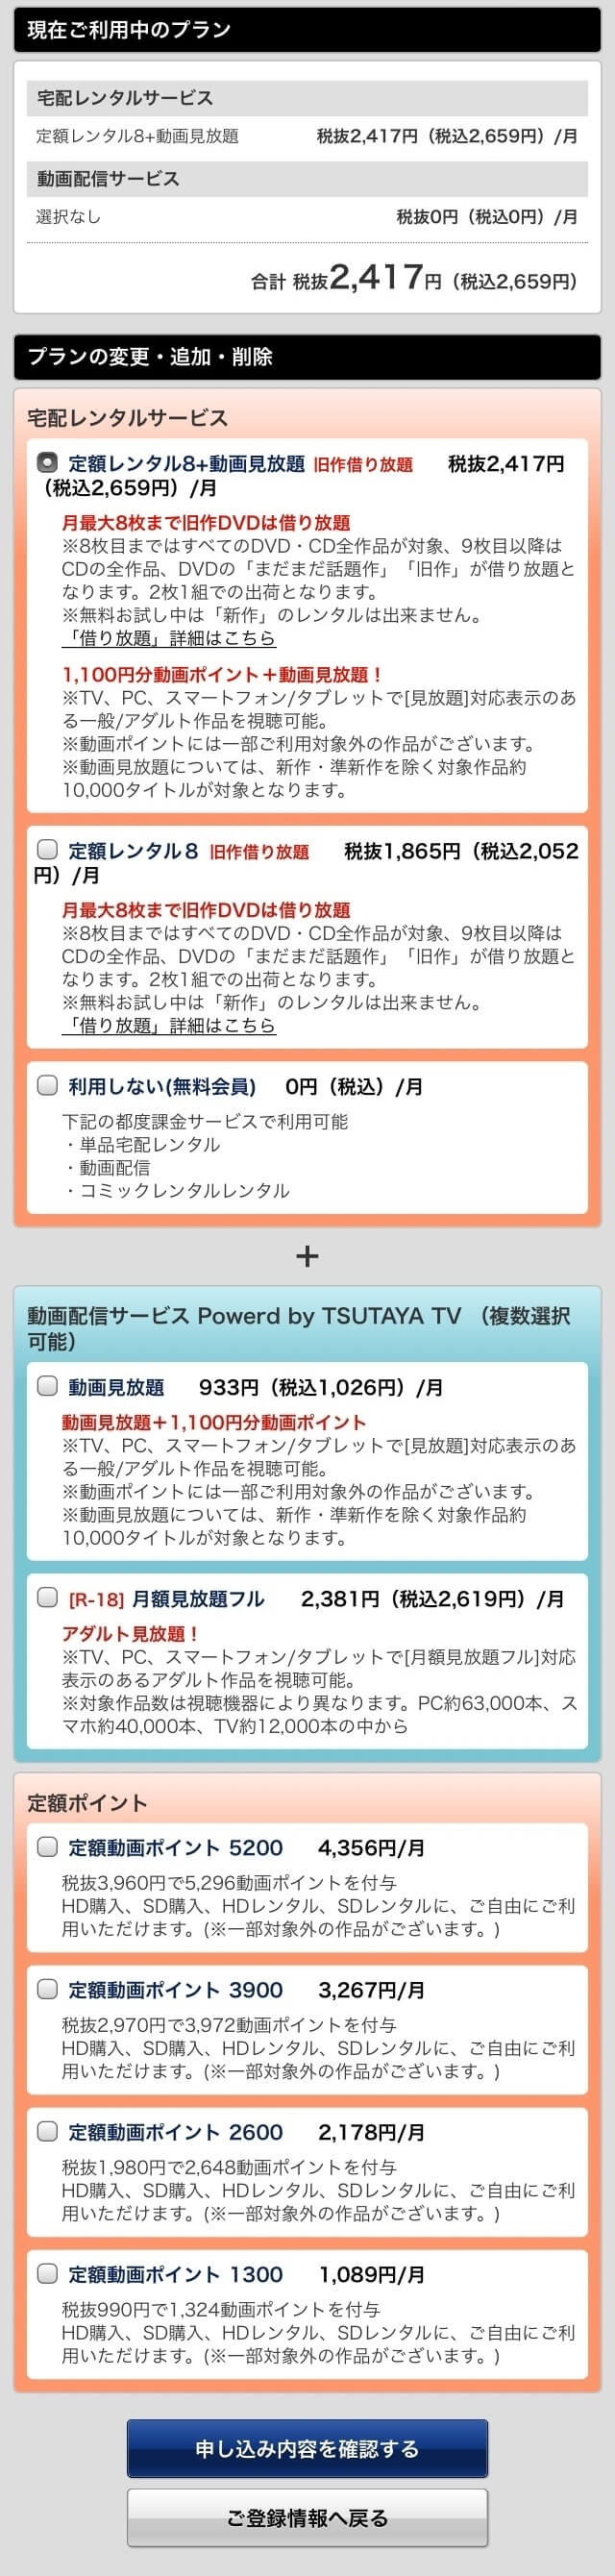 TSUTAYA TV・DISCASプラン変更2